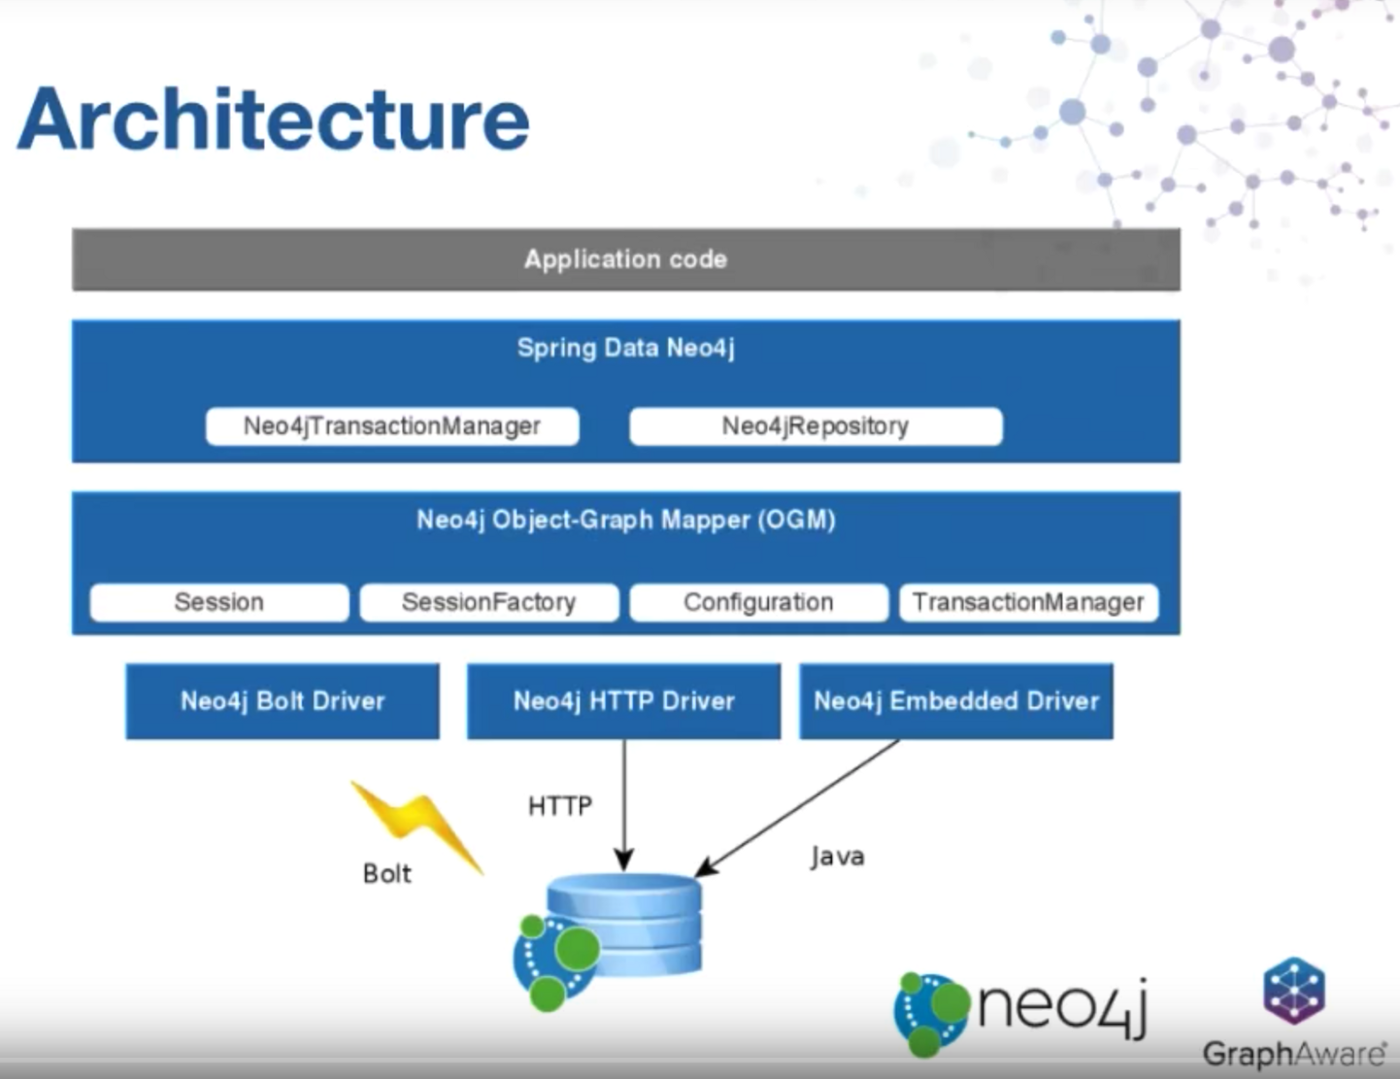 Spring into Neo4j with Spring Data 5, Spring Boot 2, and Neo4j!